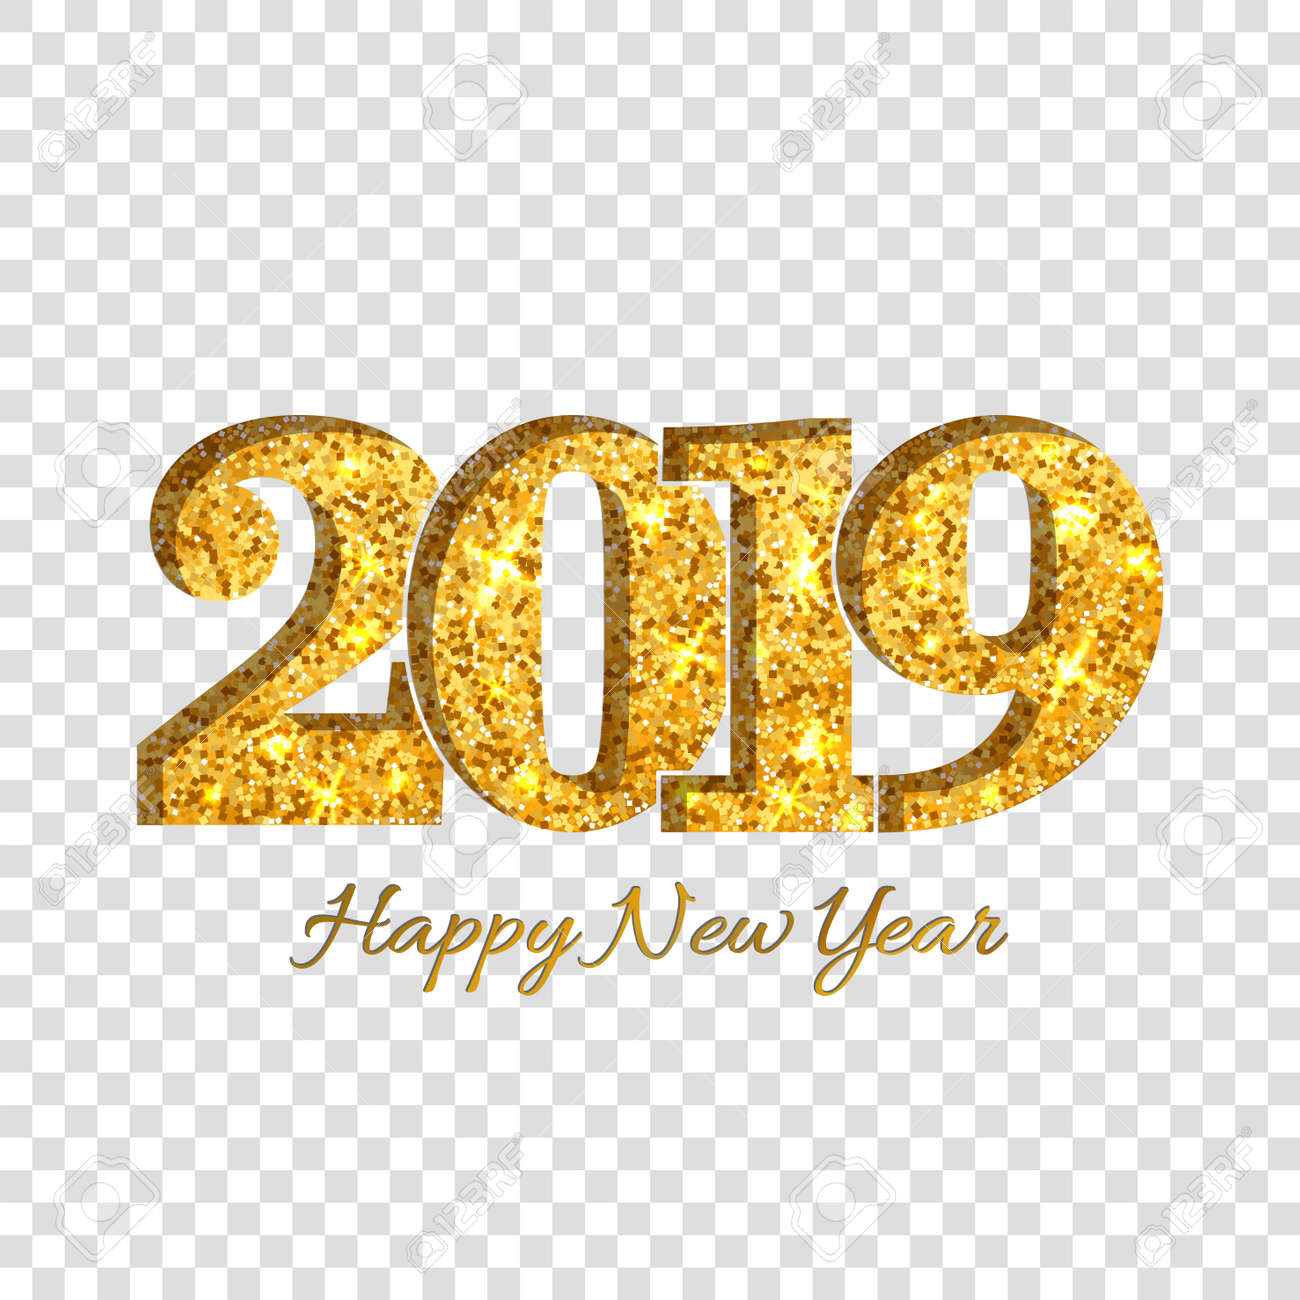 Happy New Year Transparent Background 21